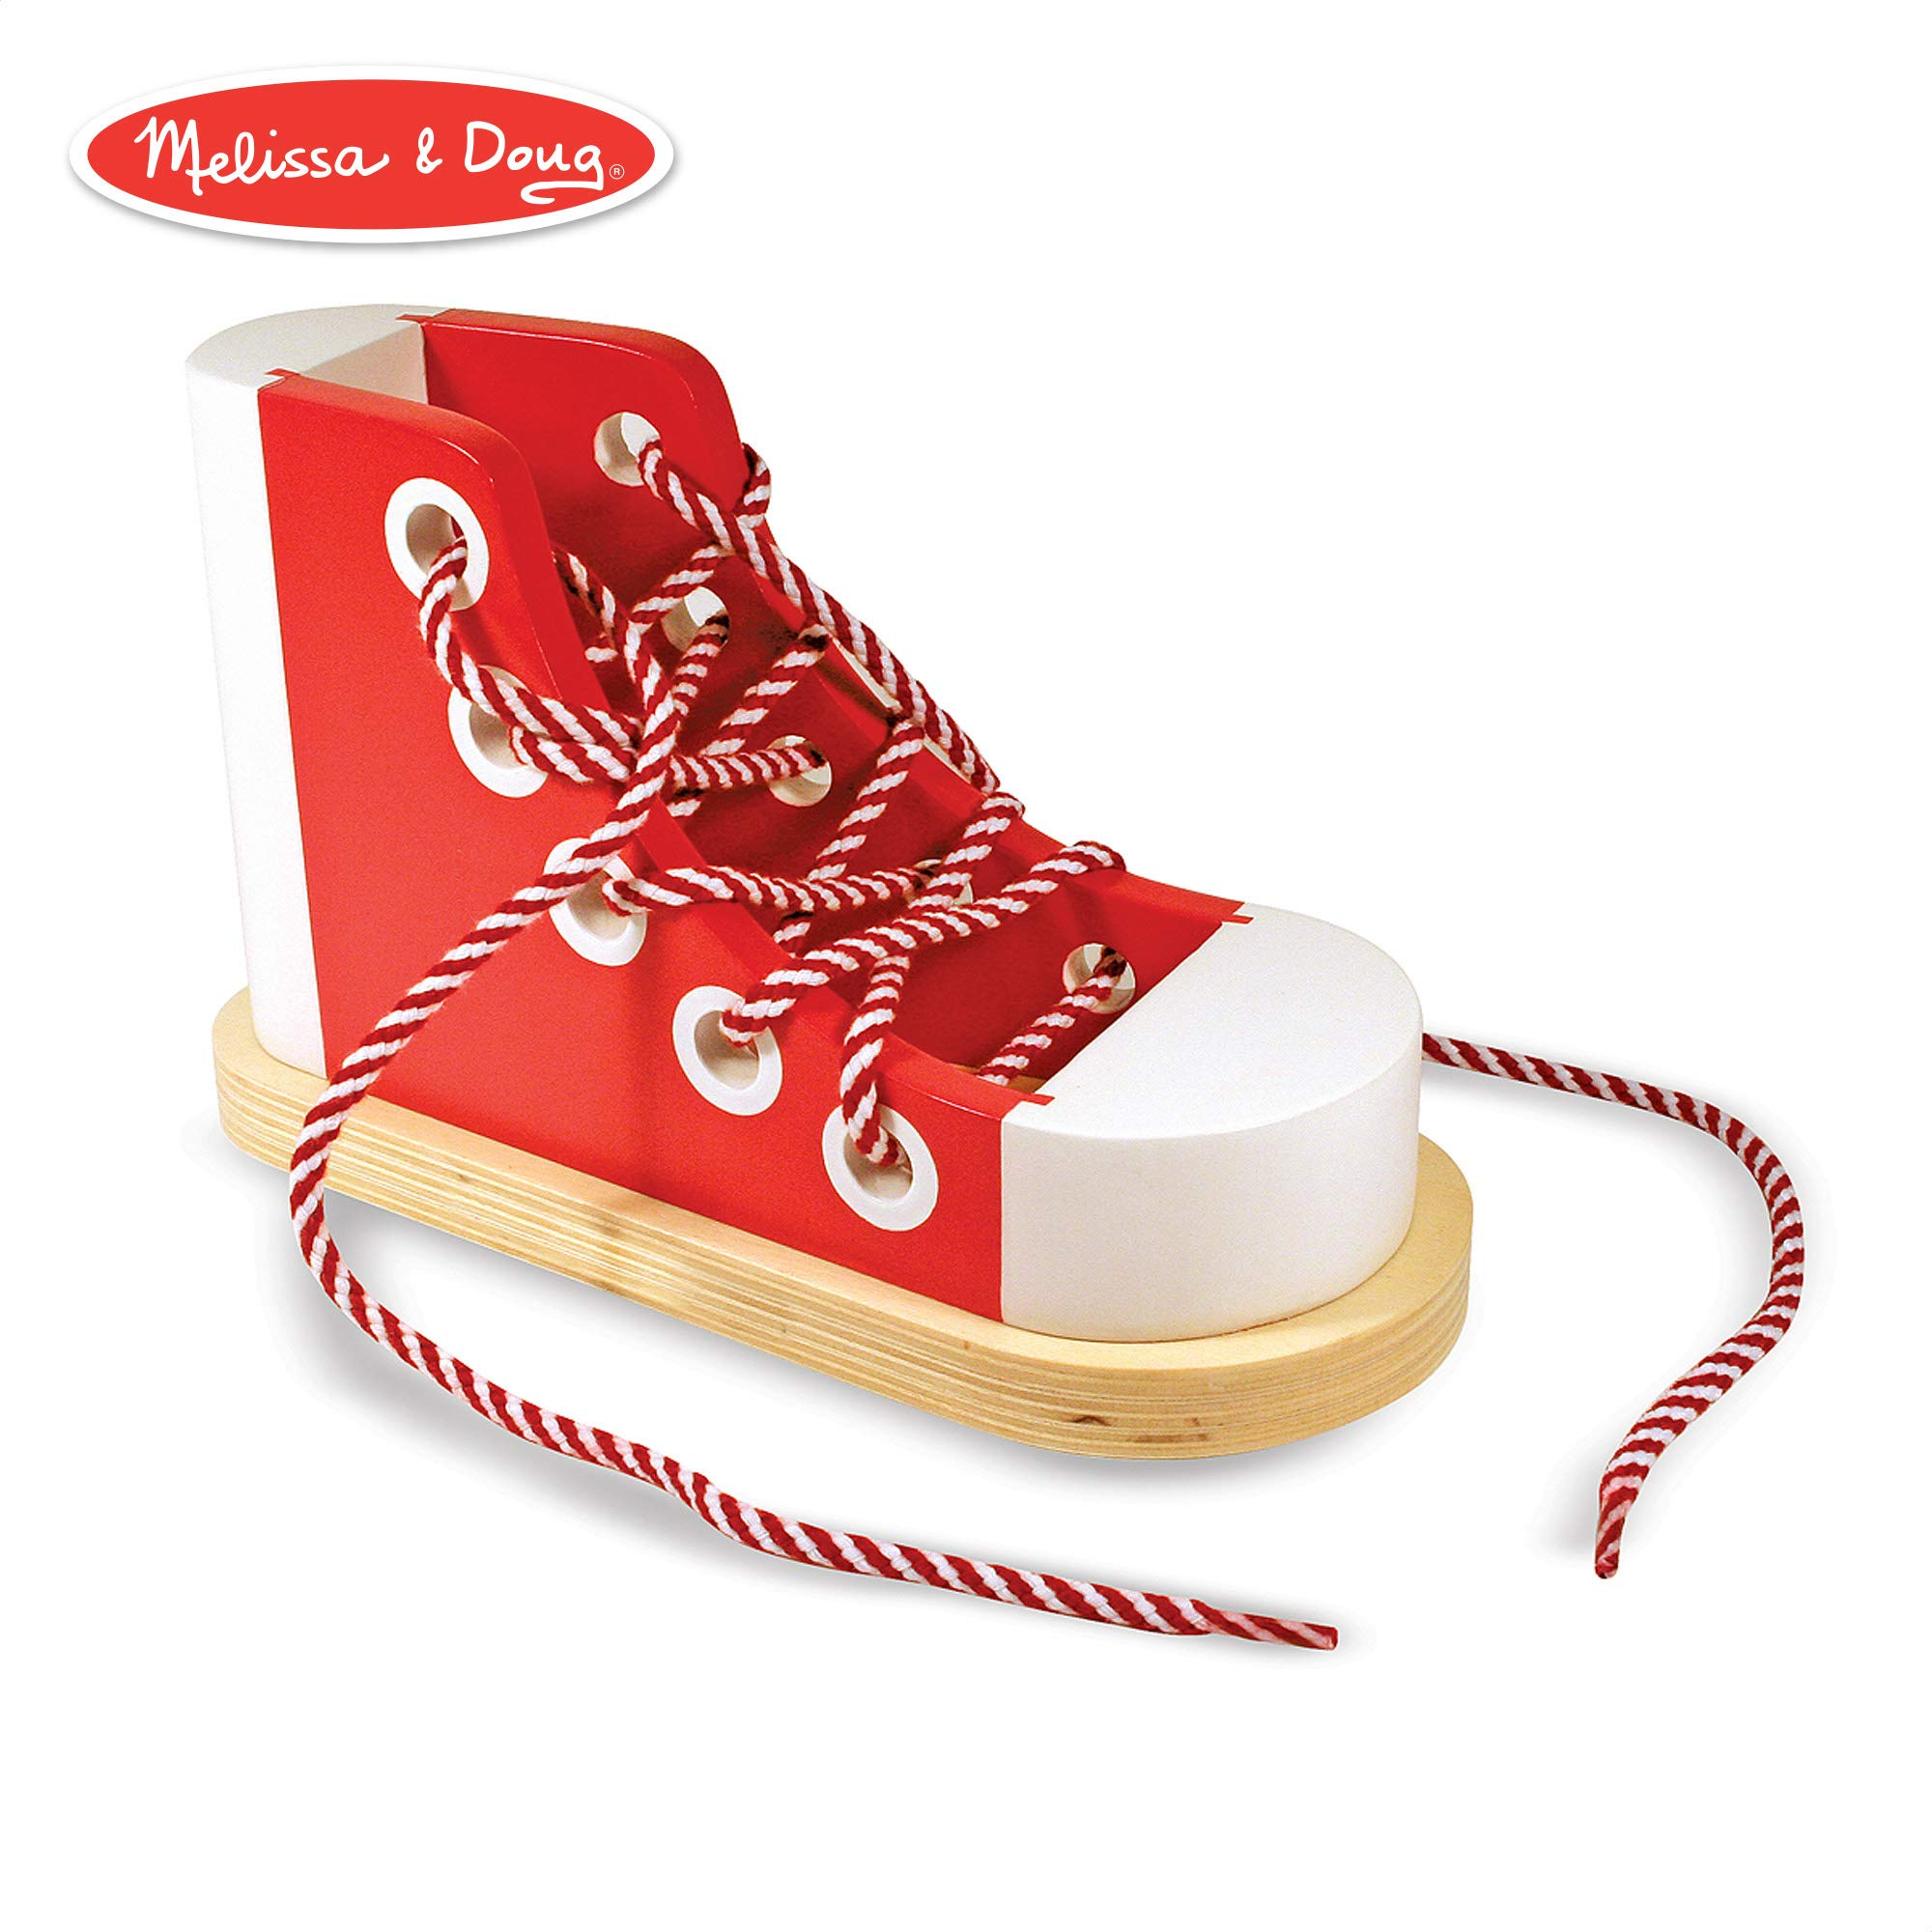 Melissa & Doug Deluxe Wood Lacing Sneaker (Learn to Tie a Shoe Educational Toy, Encourages Independence) by Melissa & Doug